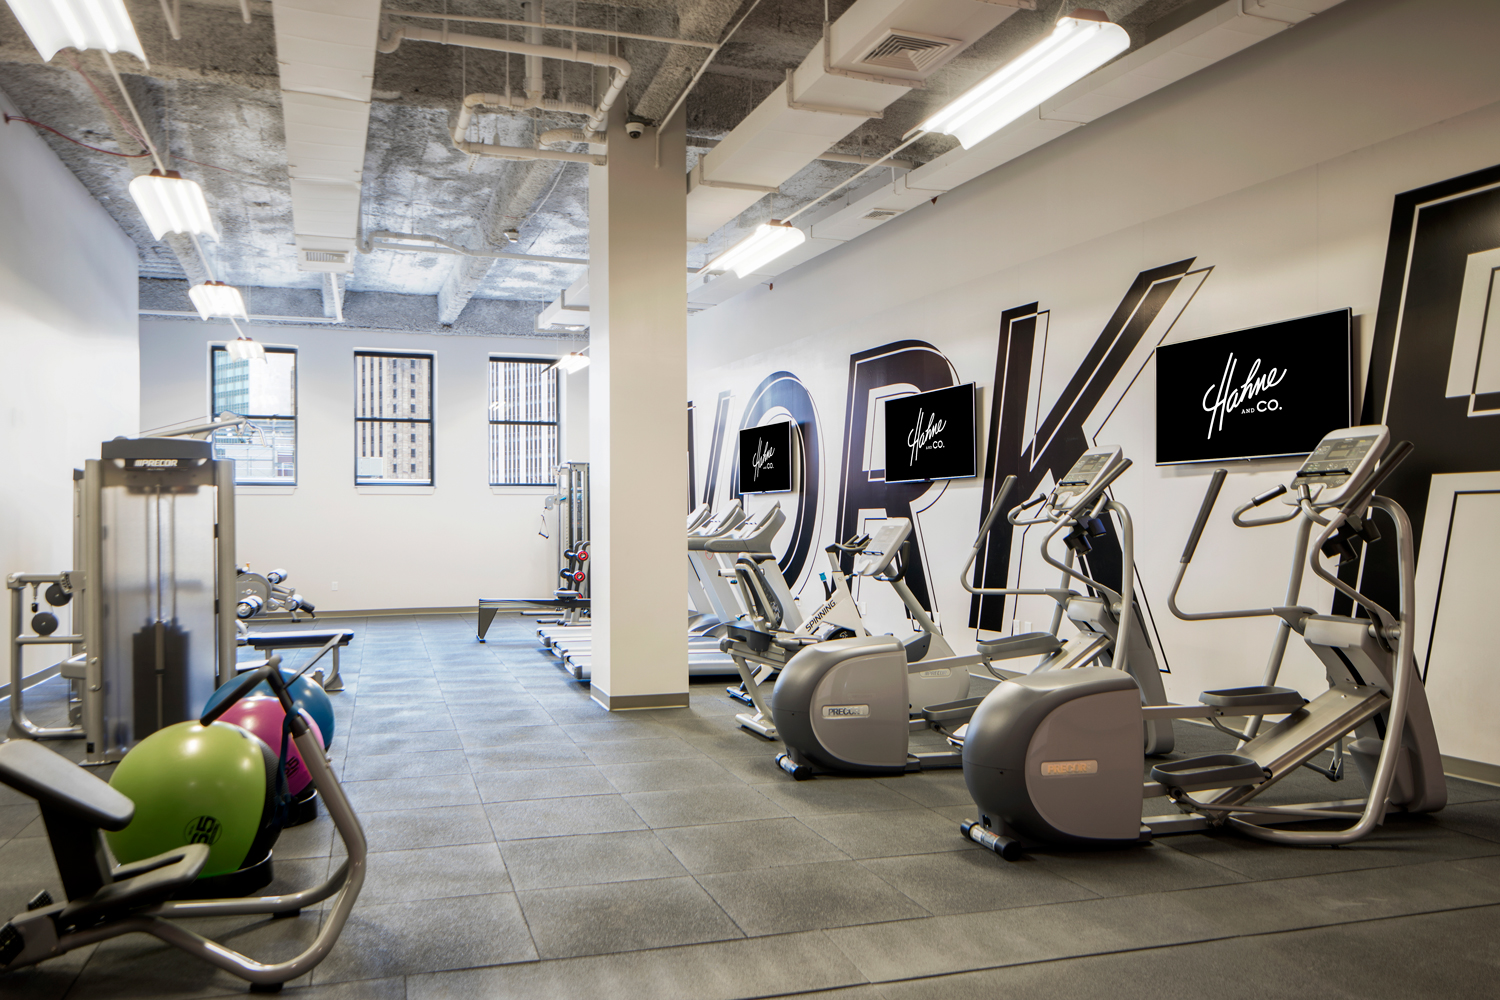 Fitness Center at Hahne & Co